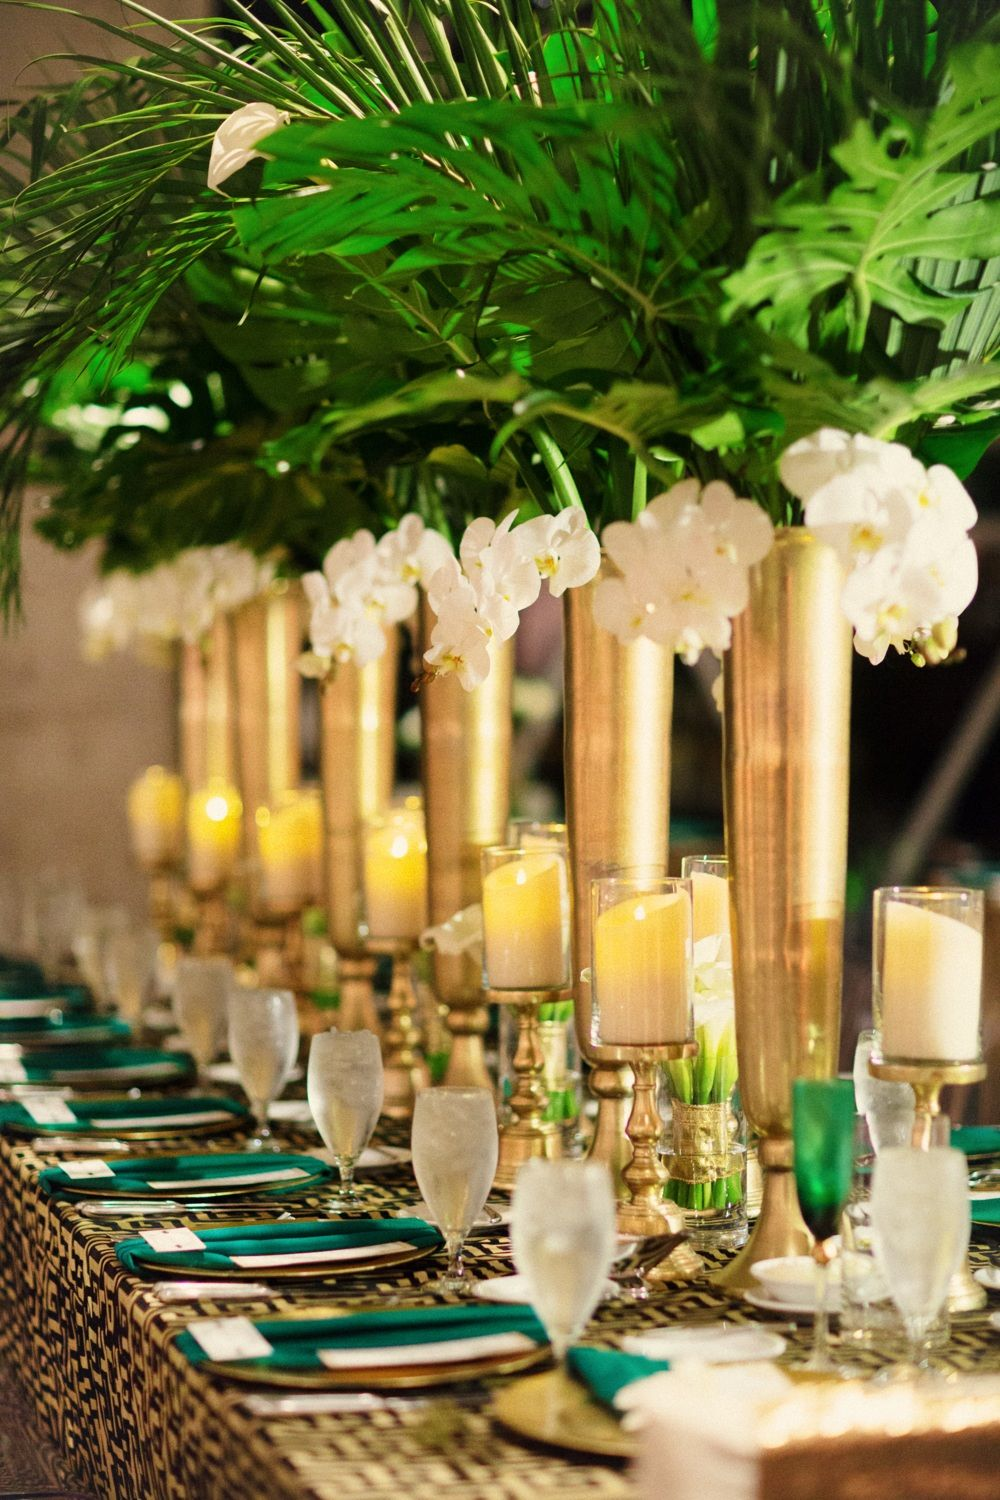 Art deco st petersburg wedding at dali museum wedding centerpiece ideas pinterest - Tischdeko bambus ...